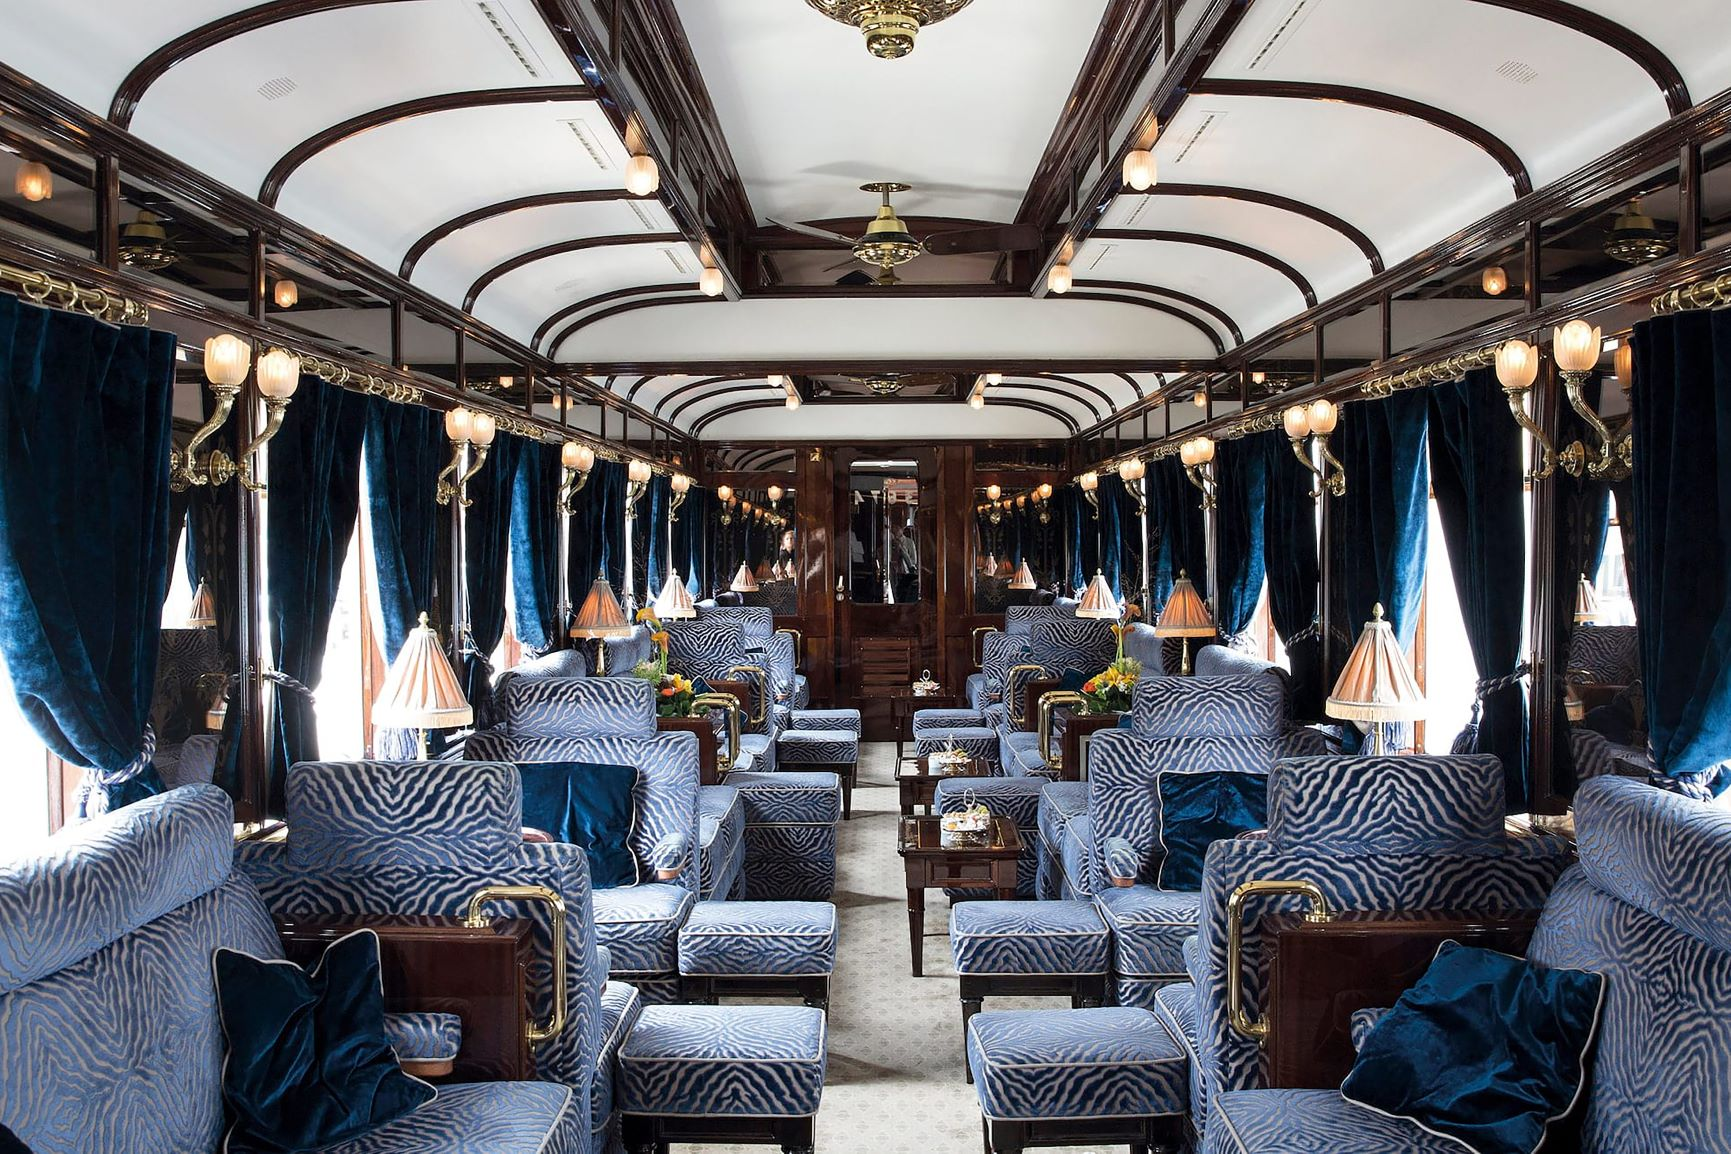 These Luxury Trains Are The Most Expensive In The World luxury trains These Luxury Trains Are The Most Expensive In The World orient